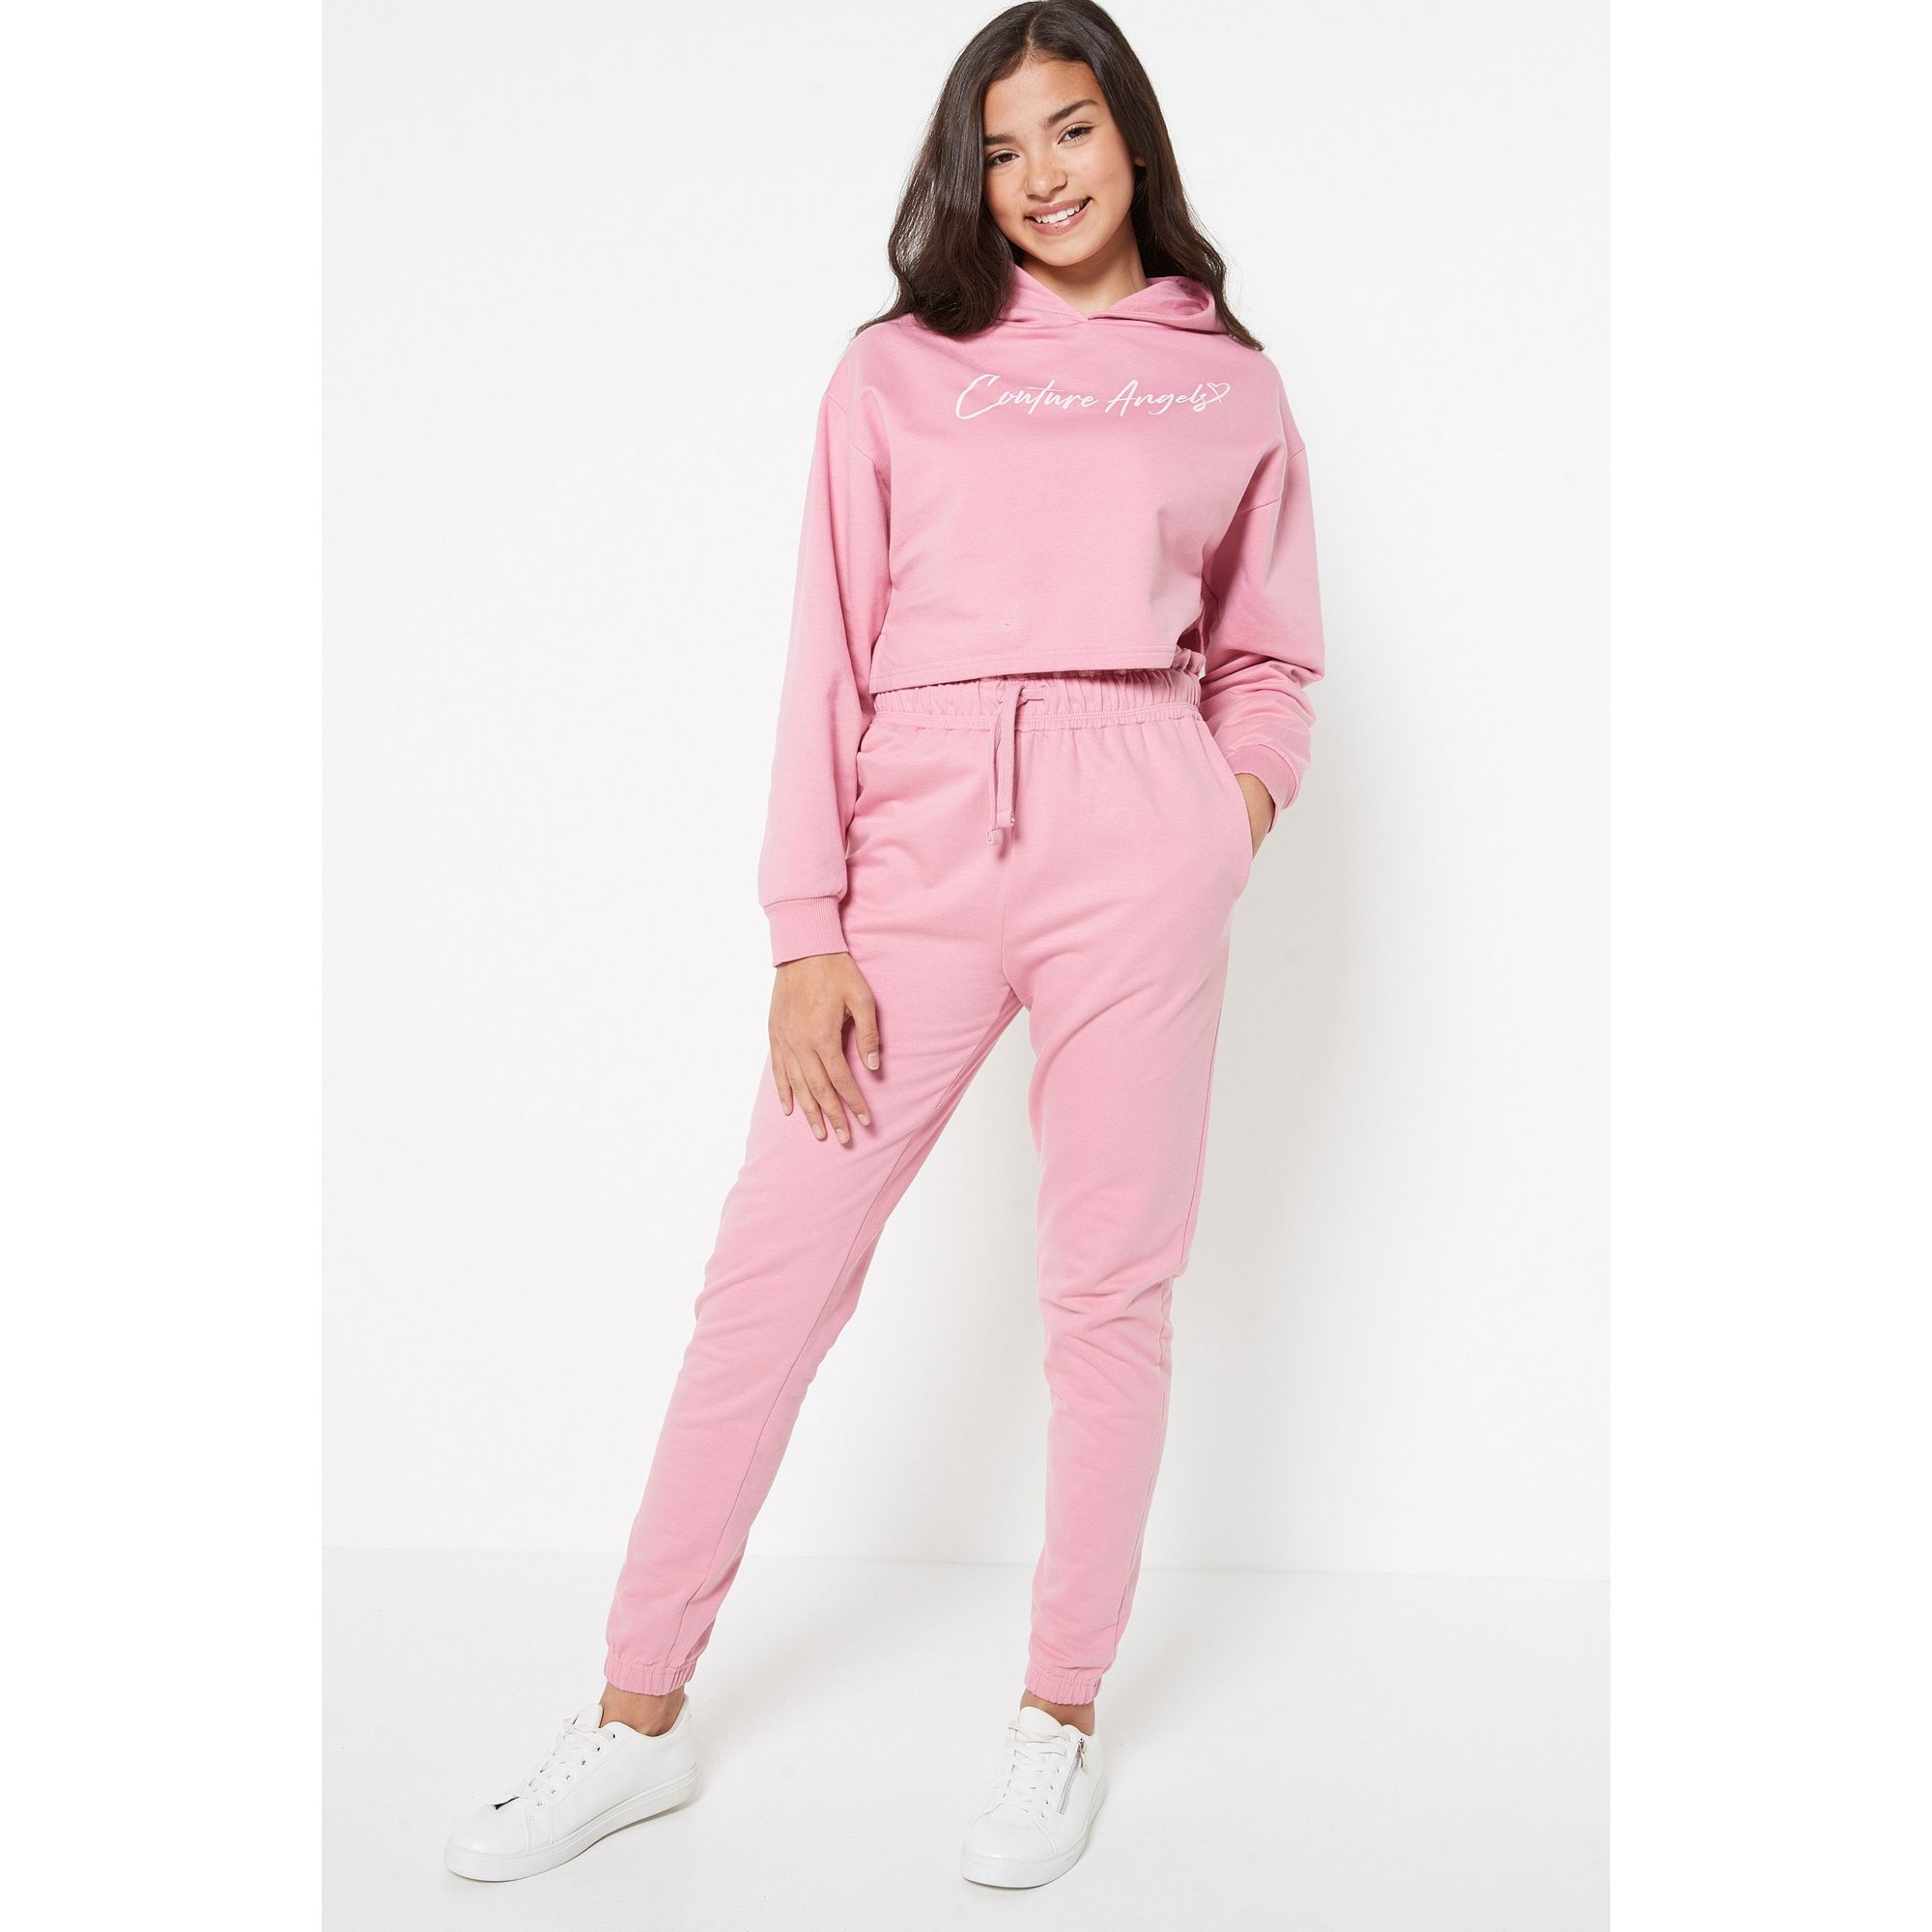 Image of Teen Girls 2 Piece Couture Angels Hoody and Jogger Set